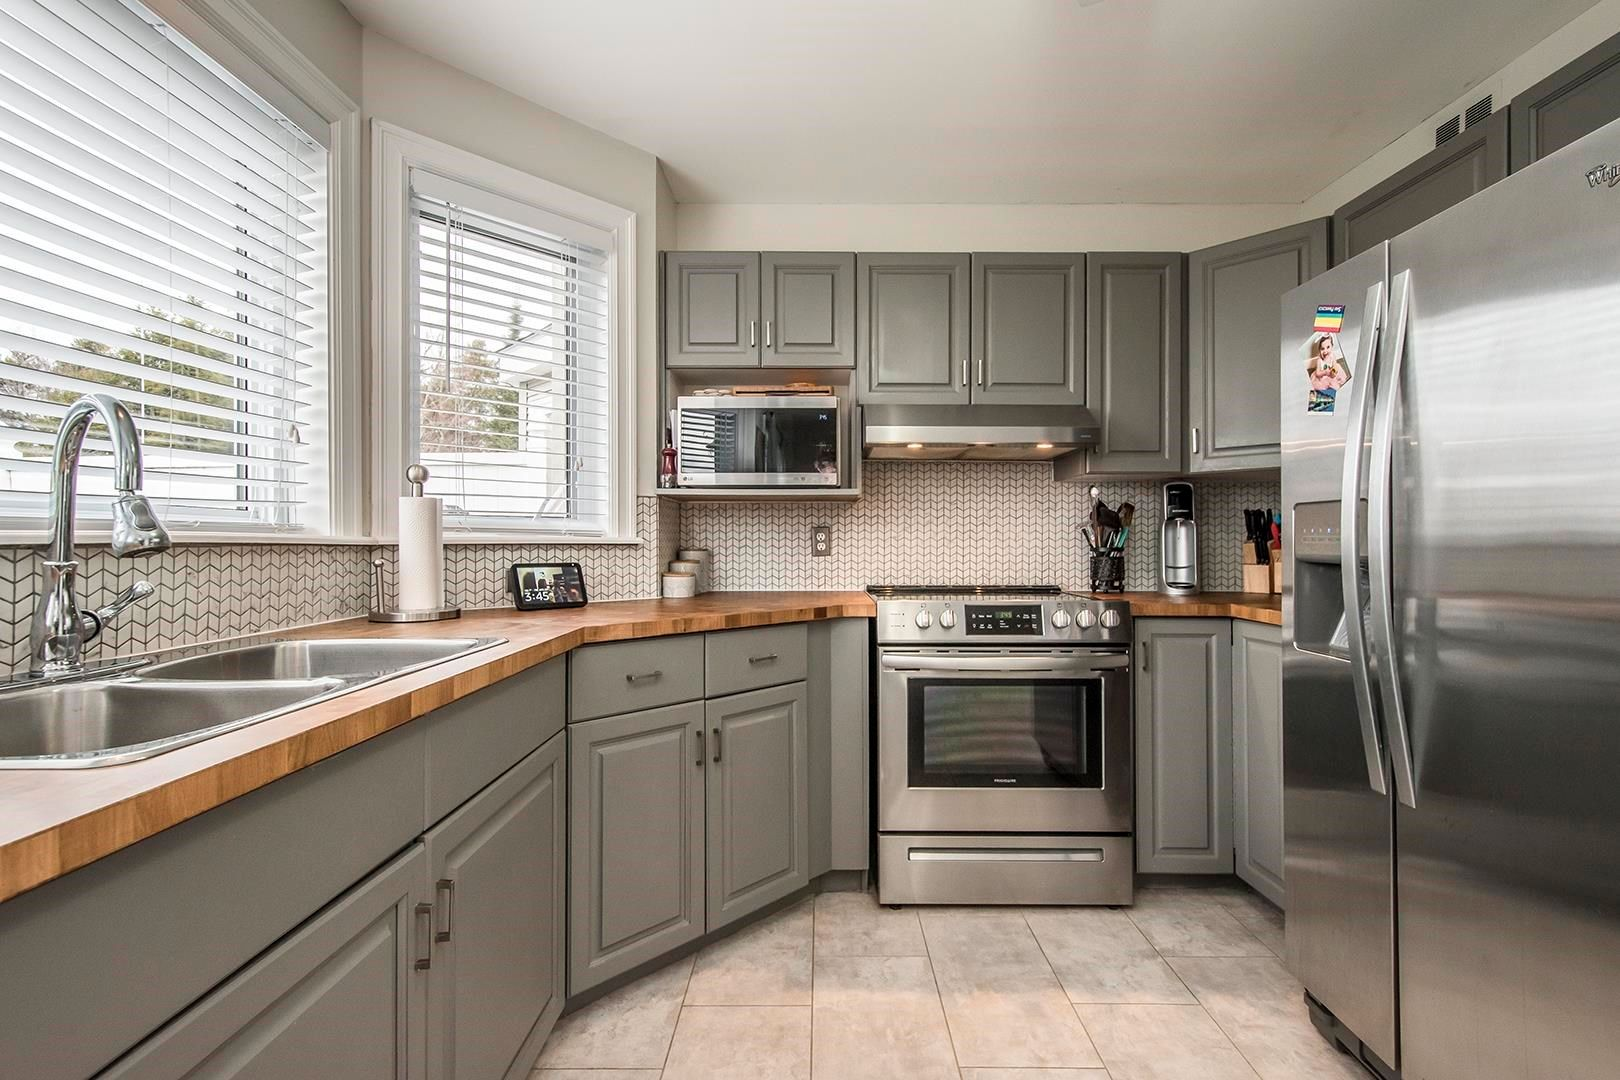 Photo 9: Photos: 64 Roy Crescent in Bedford: 20-Bedford Residential for sale (Halifax-Dartmouth)  : MLS®# 202110846